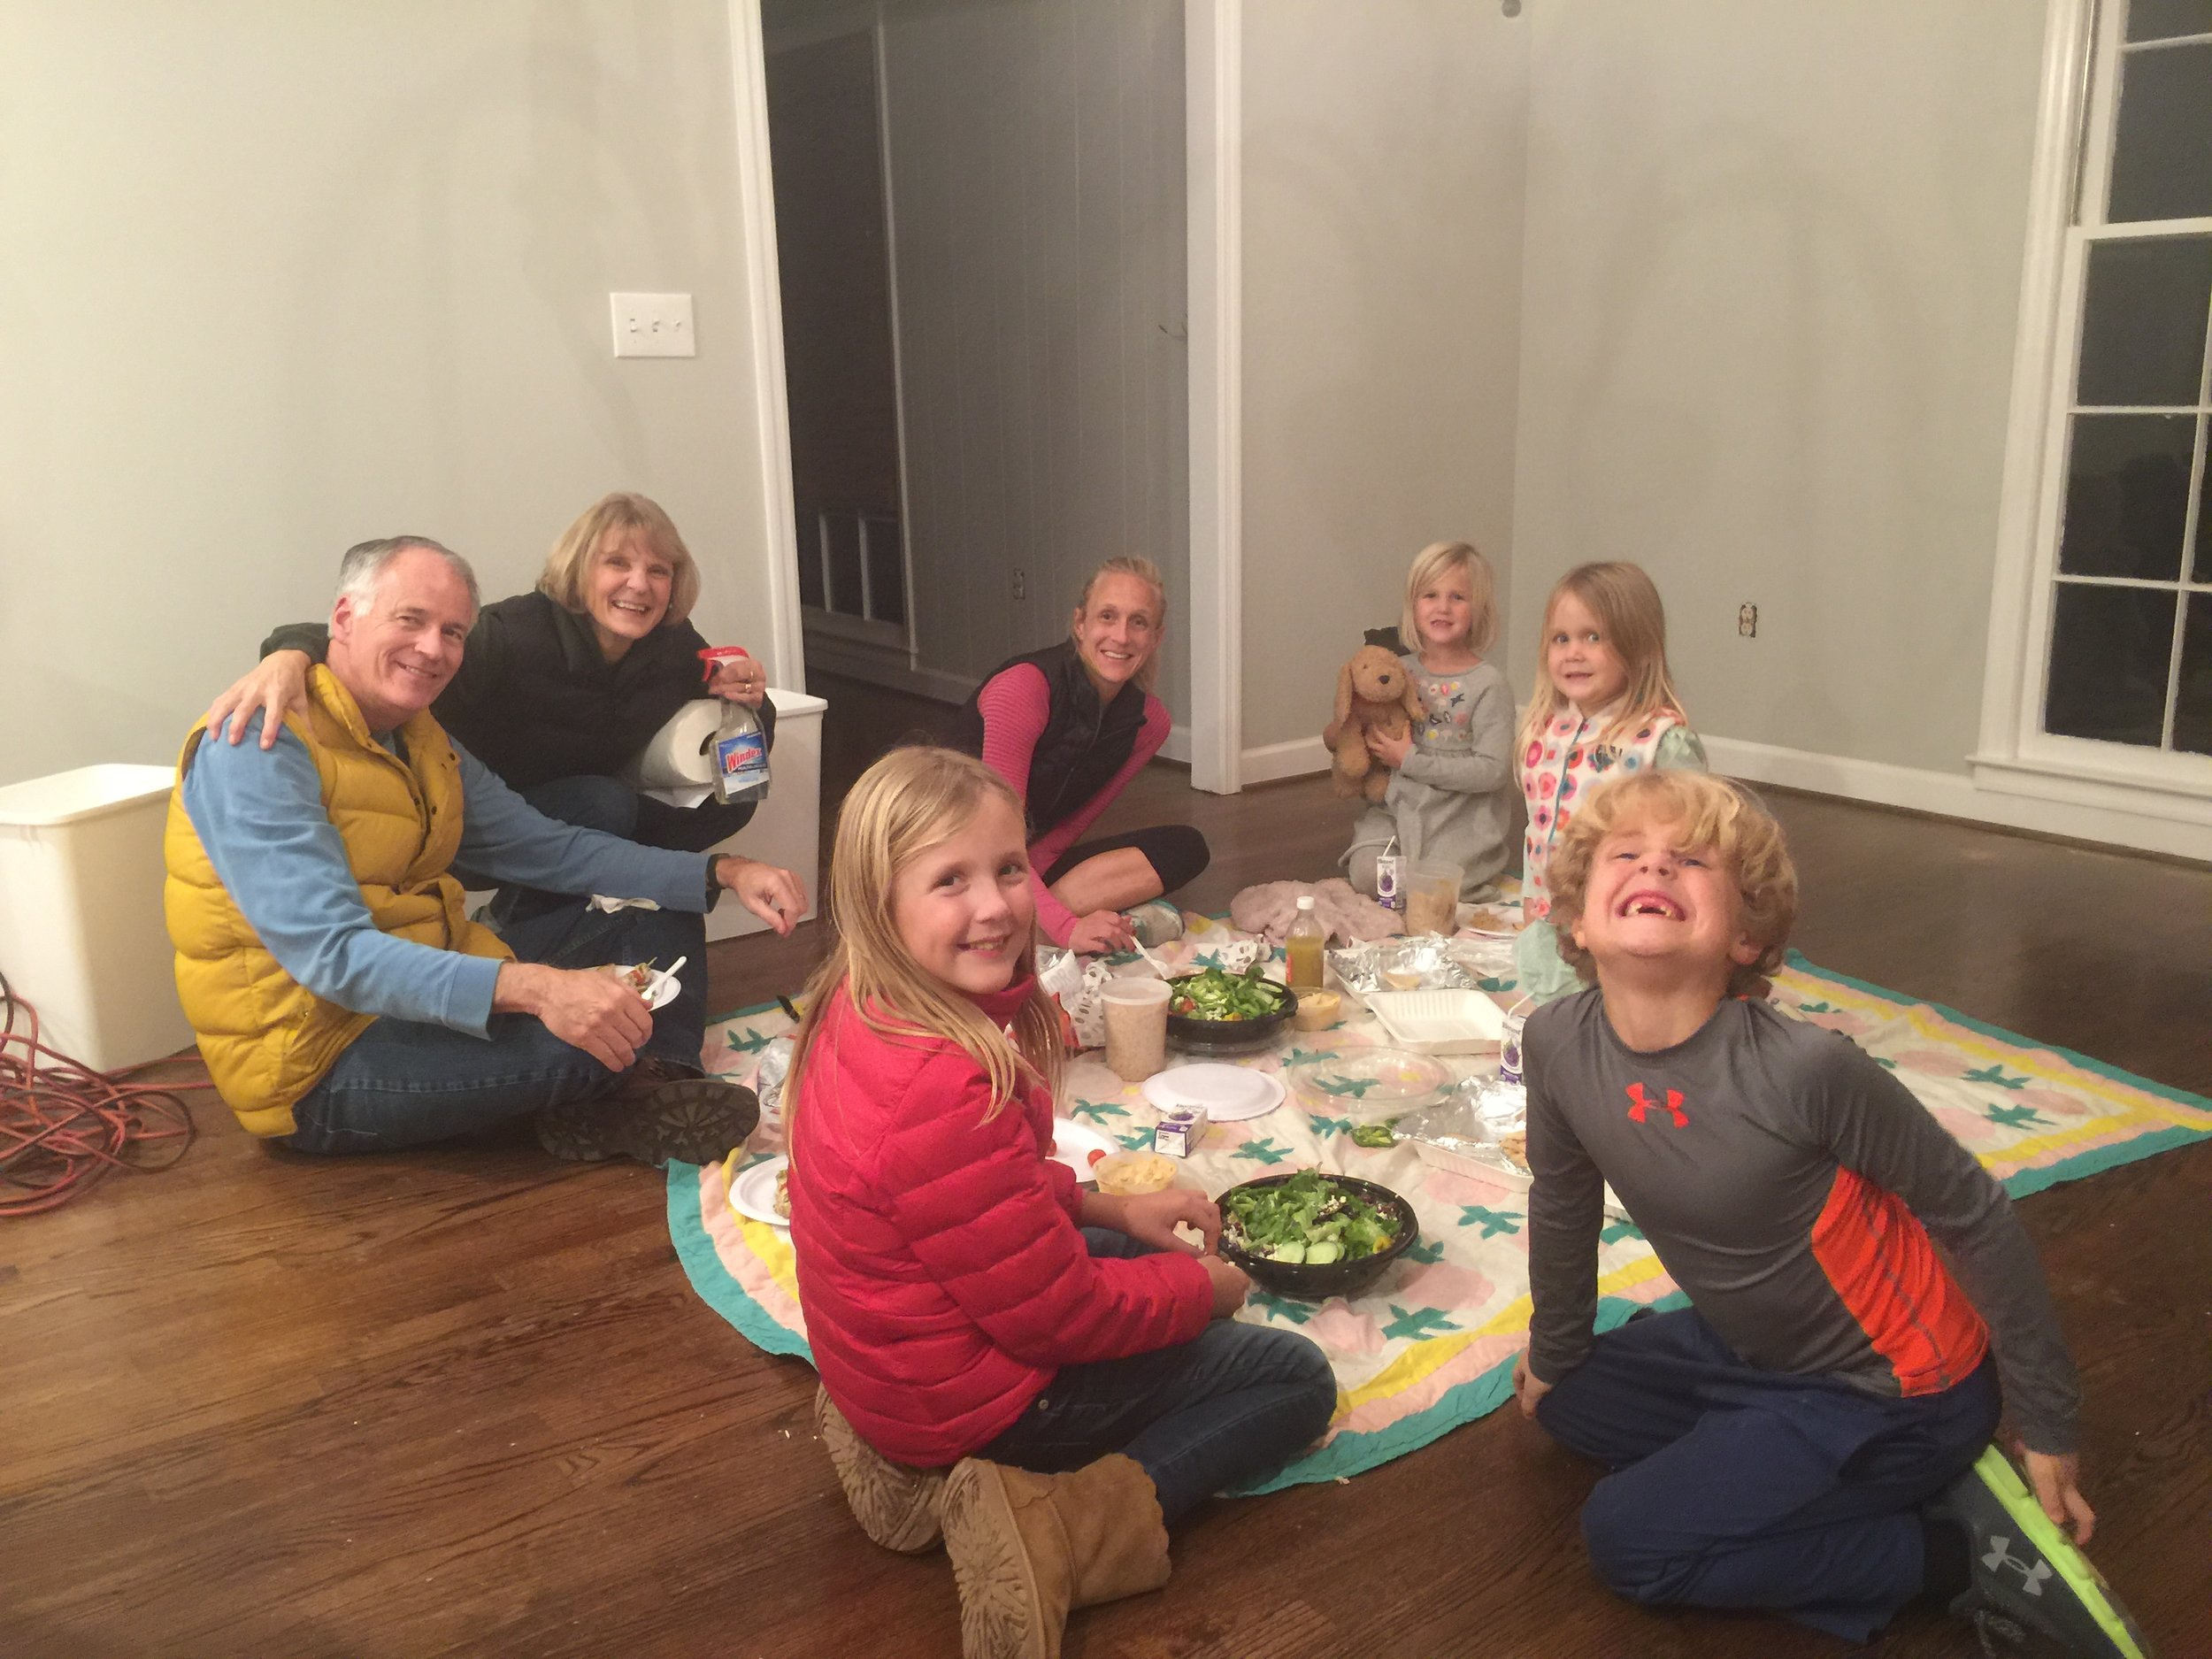 A QUICK DINNER IN THE KITCHEN (THANK YOU ZOE'S!) DURING ONE OF OUR CLEANING NIGHTS